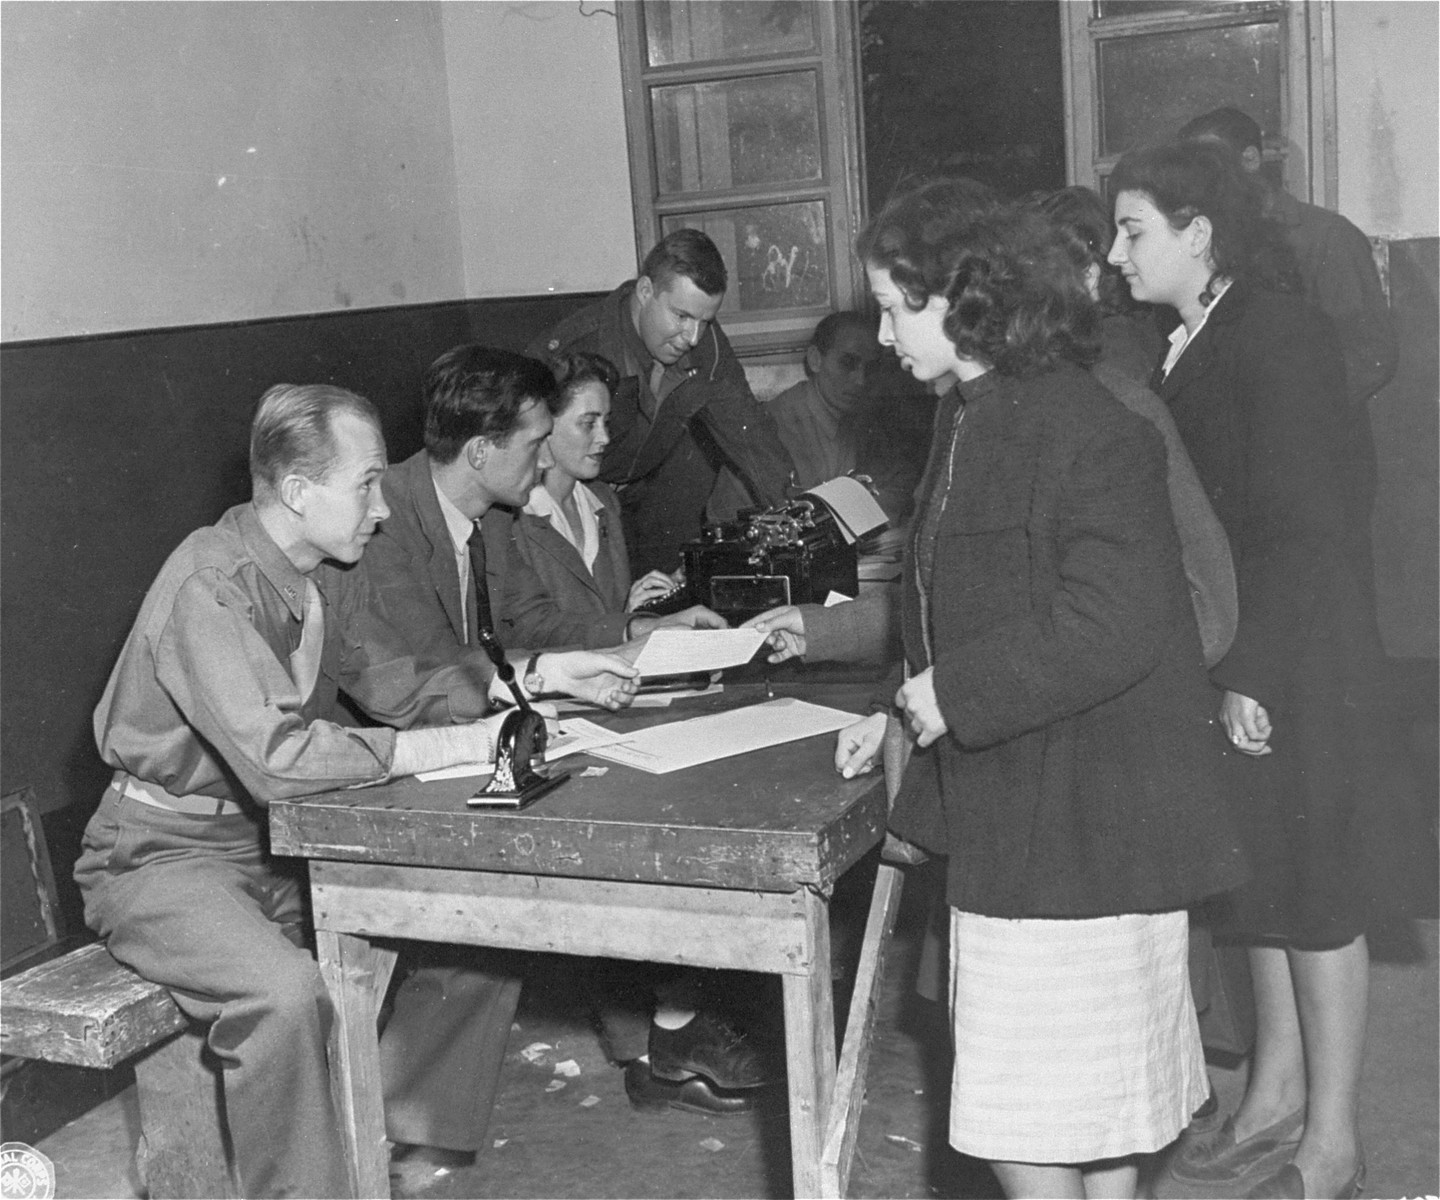 Jewish DPs en route to Palestine undergo a registration process in Rome.  Among those pictured are Eugene Hammond, representative of the Intergovernmental Commission on Refugees, and Major George Hartman, Allied Commission Repatriation Officer.